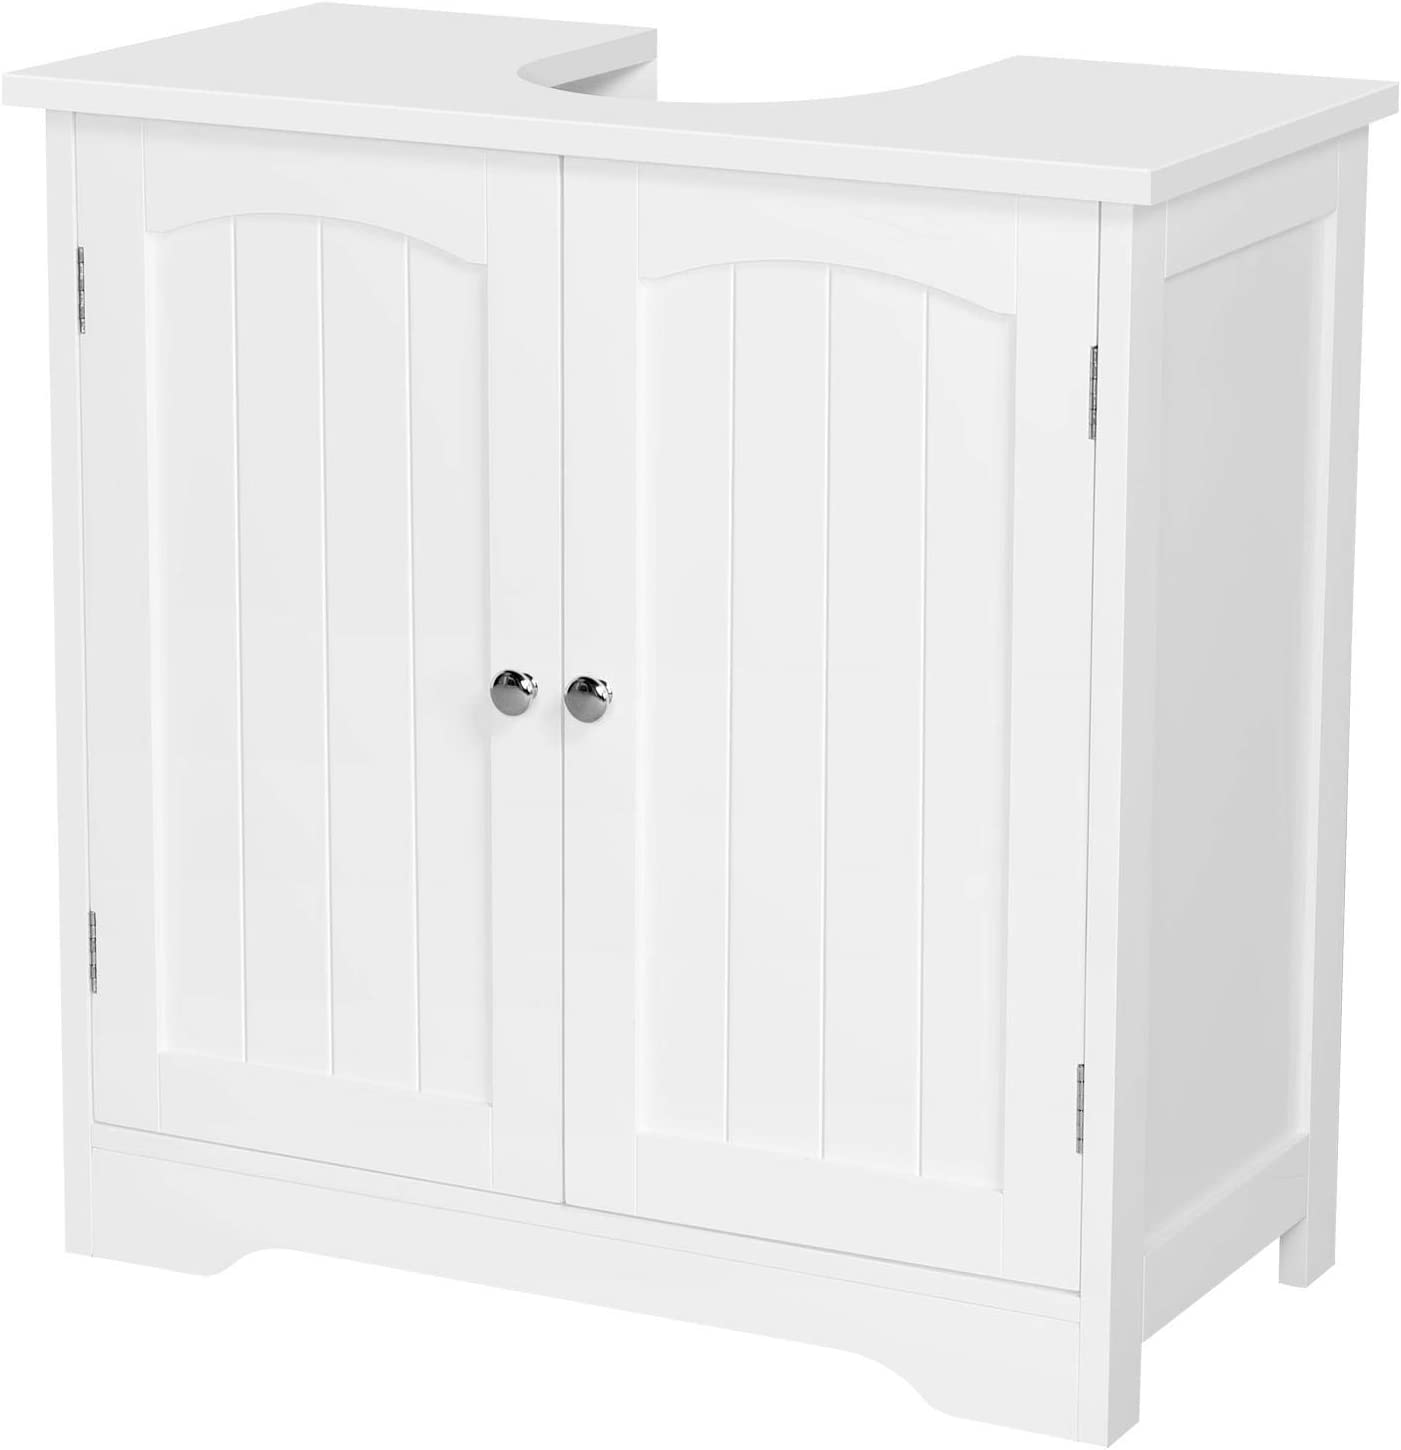 Yaheetech Bathroom Under Sink Cabinet Free-standing Cloakroom Vanity Basin Storage Cupboard Unit, White Wood